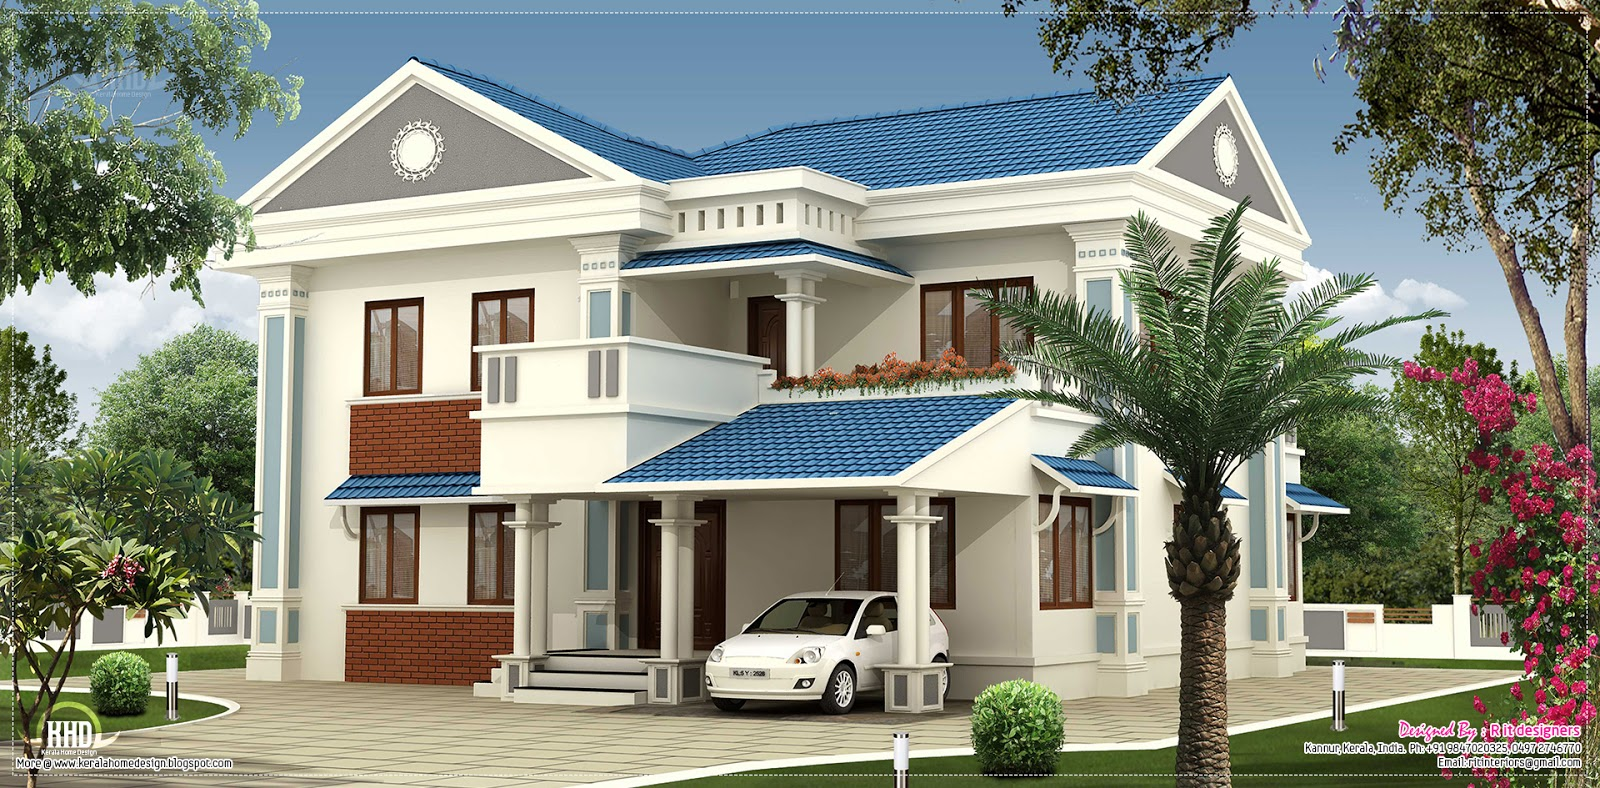 2000 beautiful villa elevation design kerala for The beautiful home